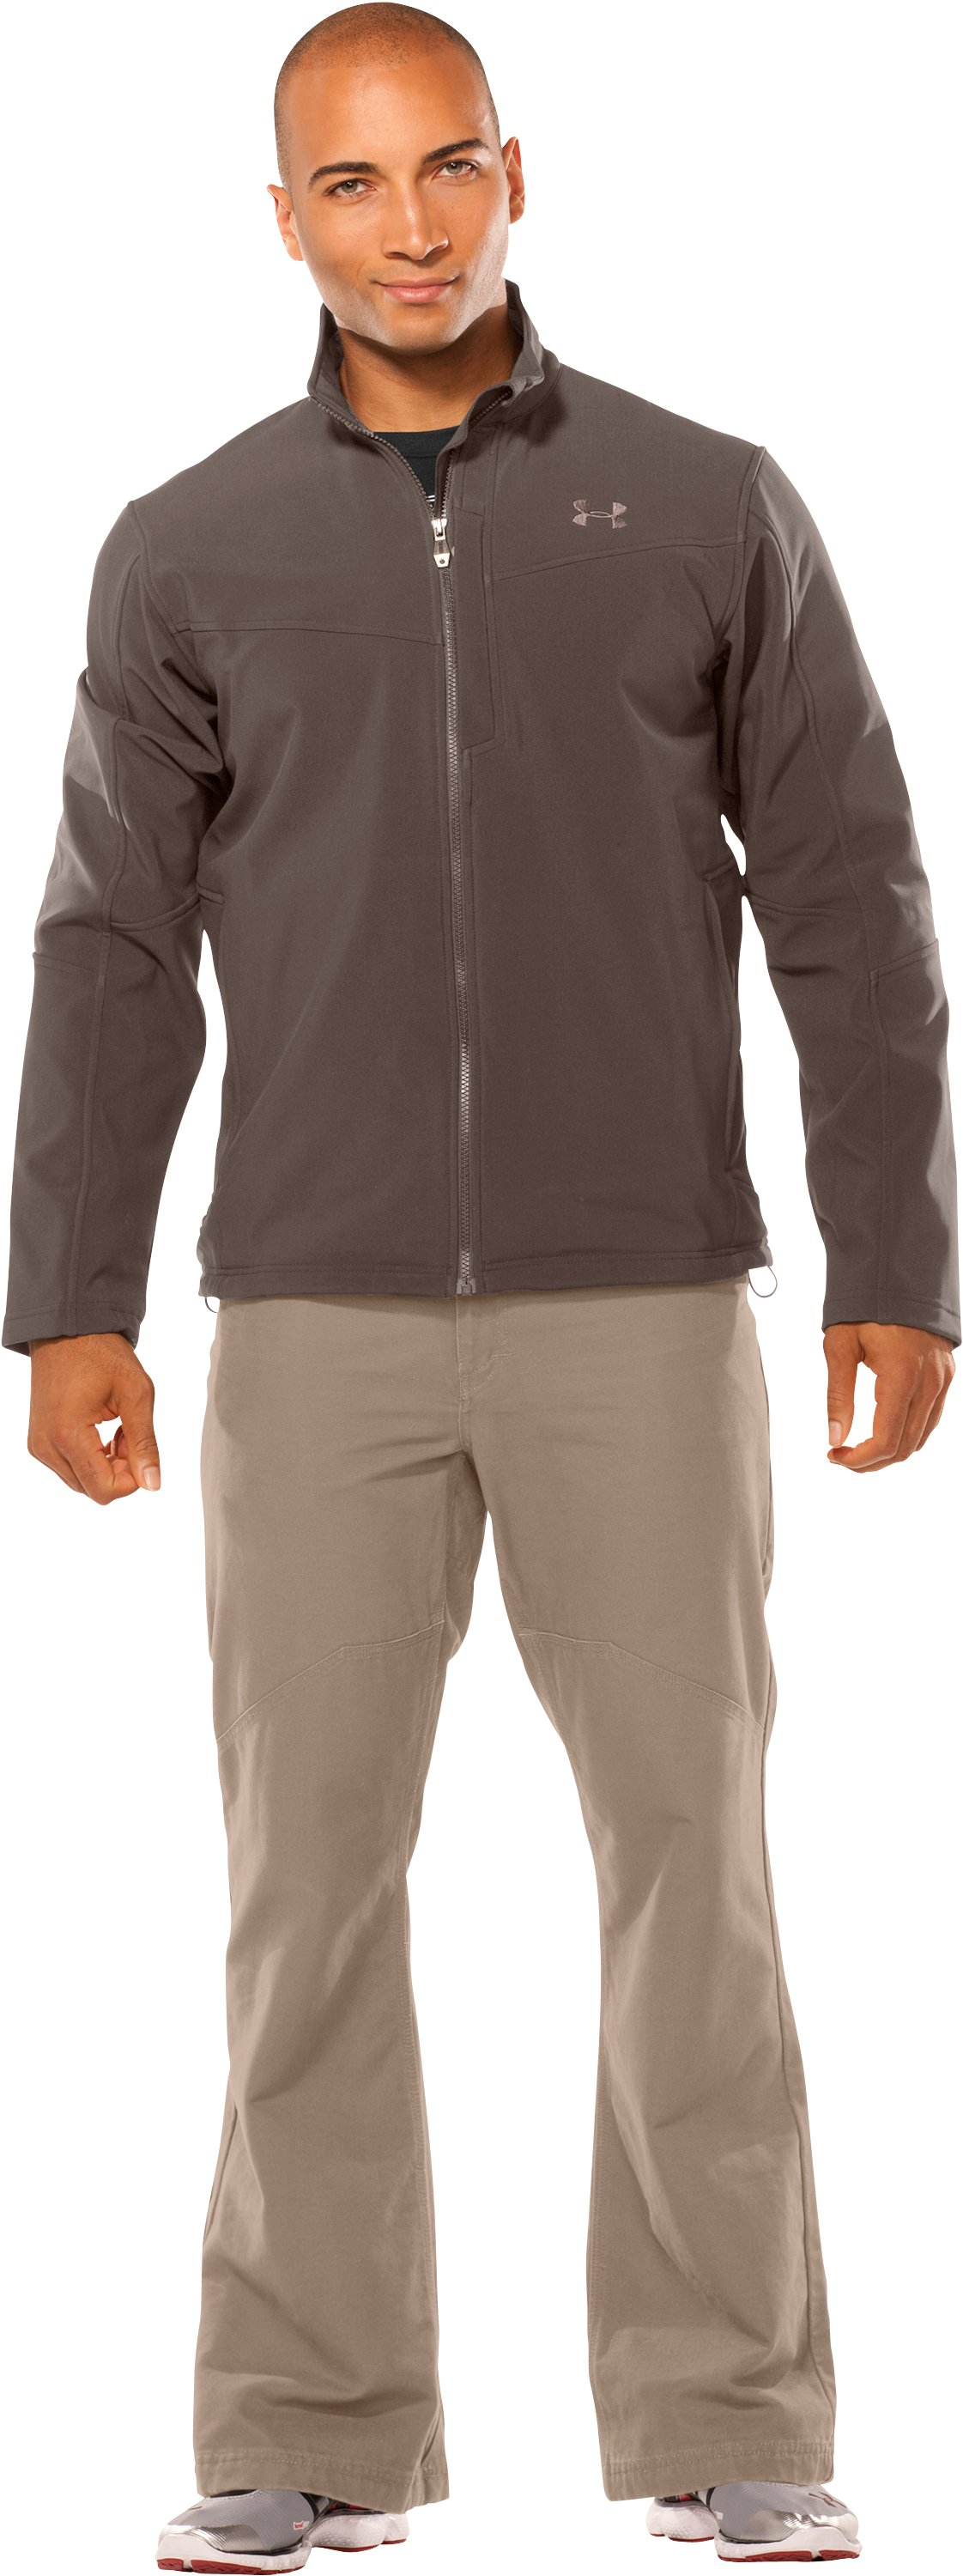 Men's Skyscraper Softshell Jacket, Hearthstone, Front